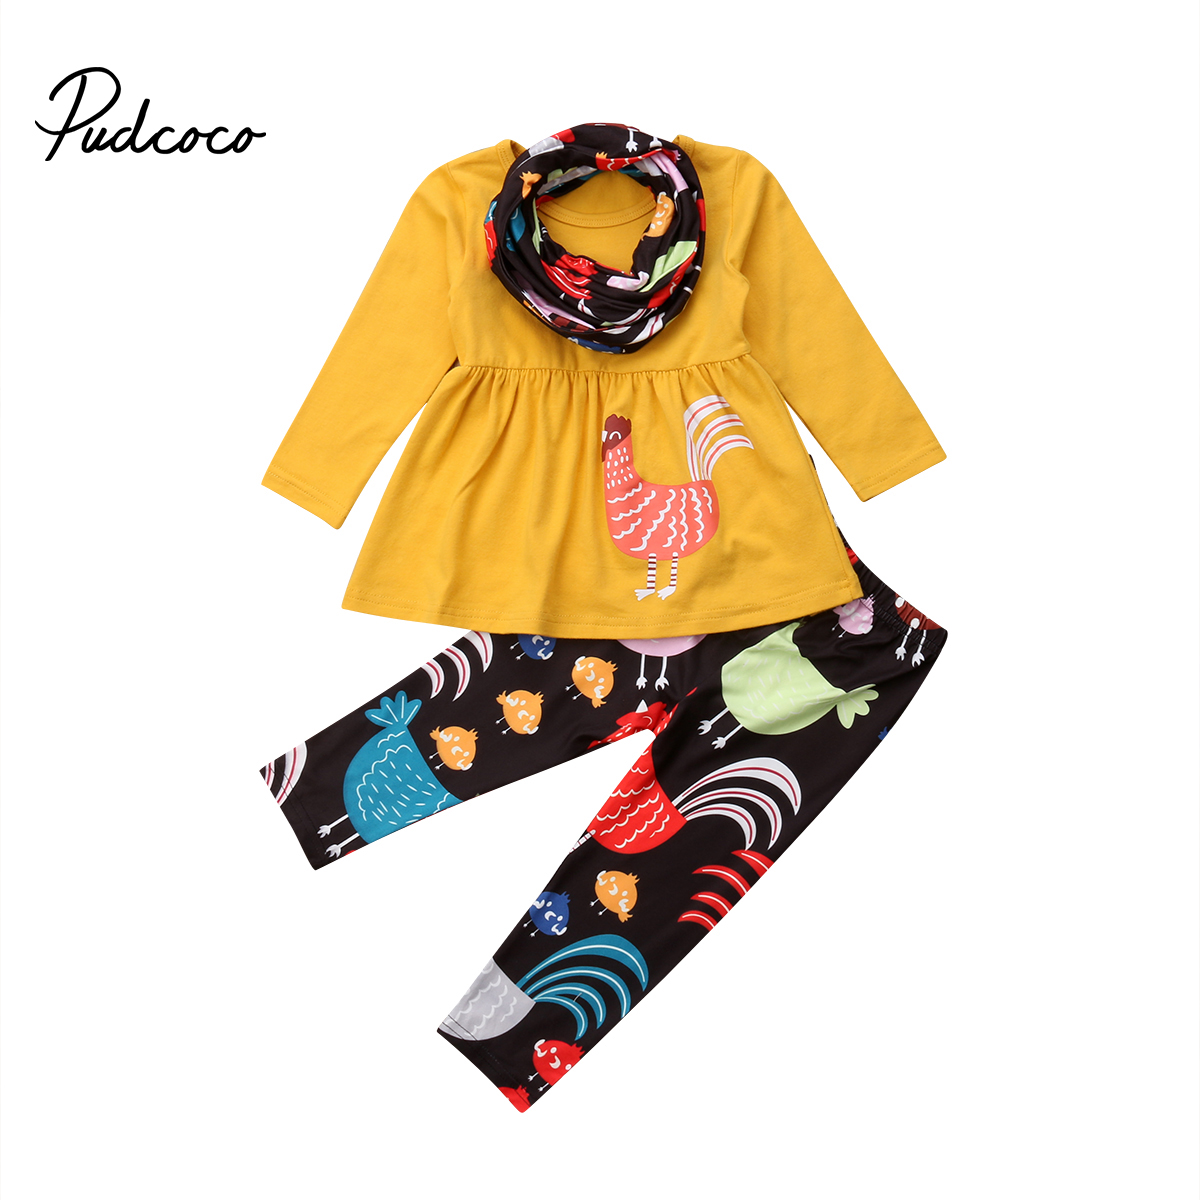 Pudcoco Baby Girl Thanksgiving Clothes Set Baby Girls 3 Piece Set Suit Cotton Top Dress + Long Pants + Scarf  Baby Girl Outfits